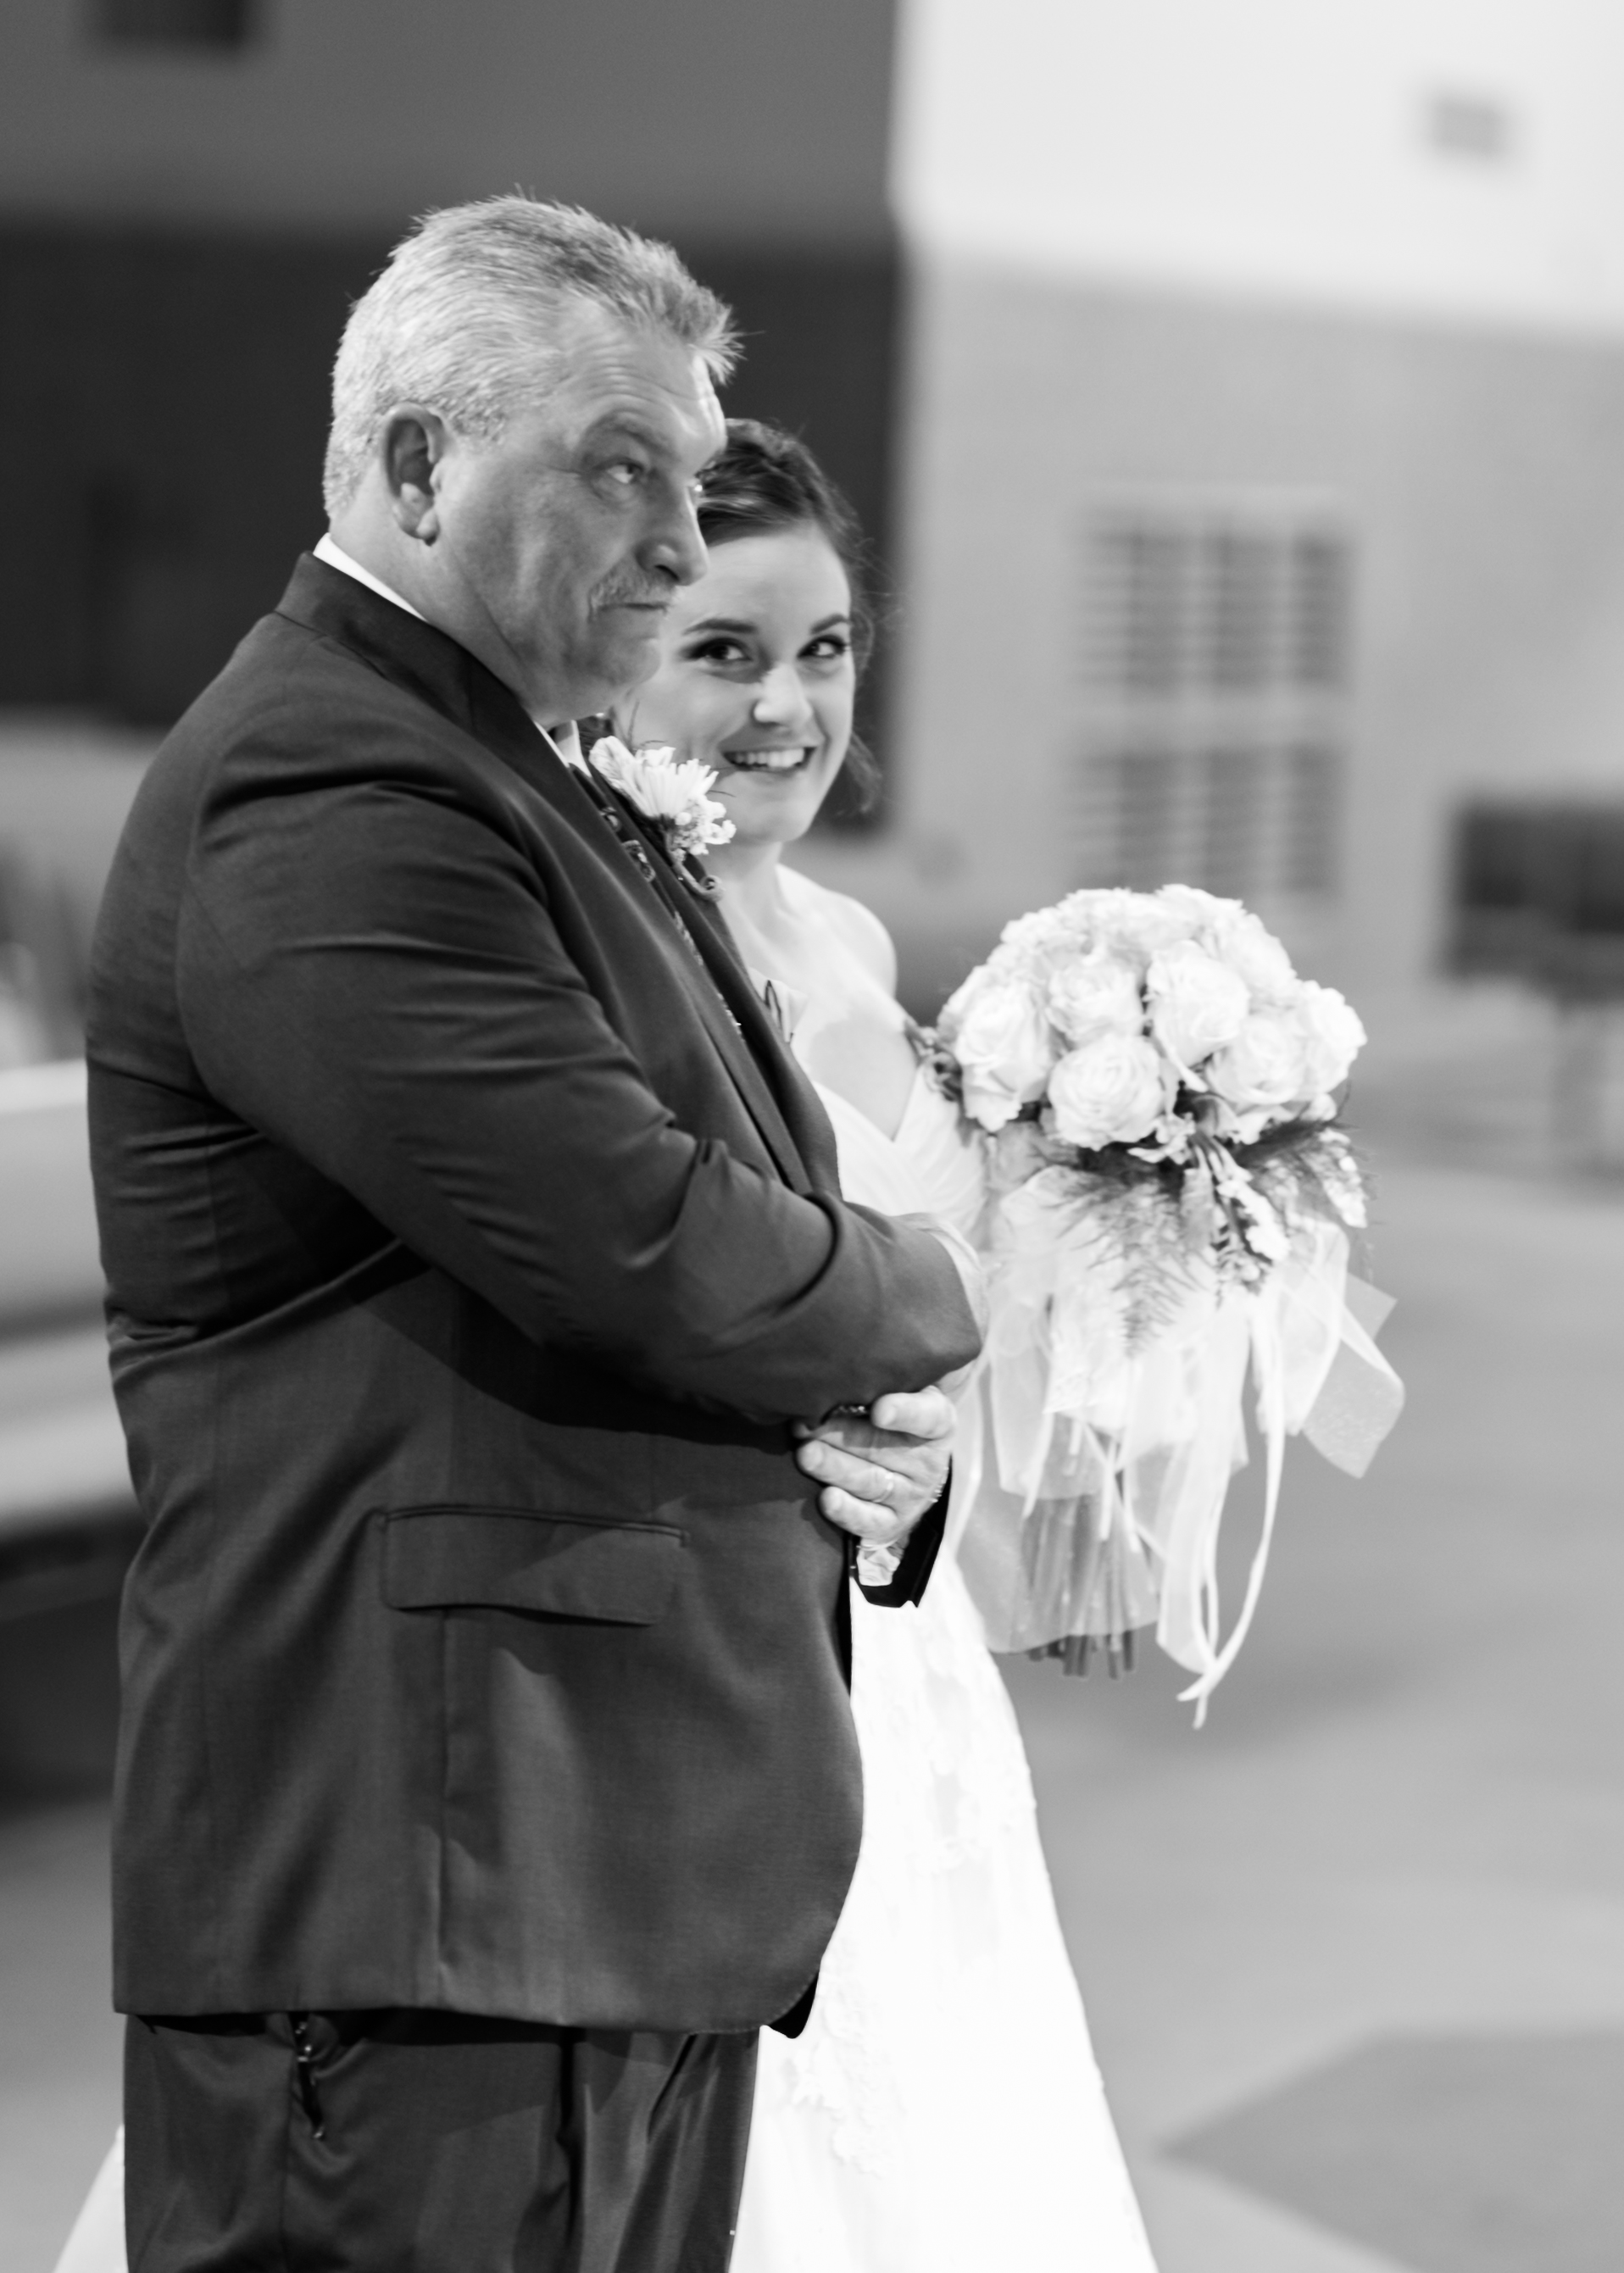 06-04-16_Ramsey_ceremony_aisle-18.jpg